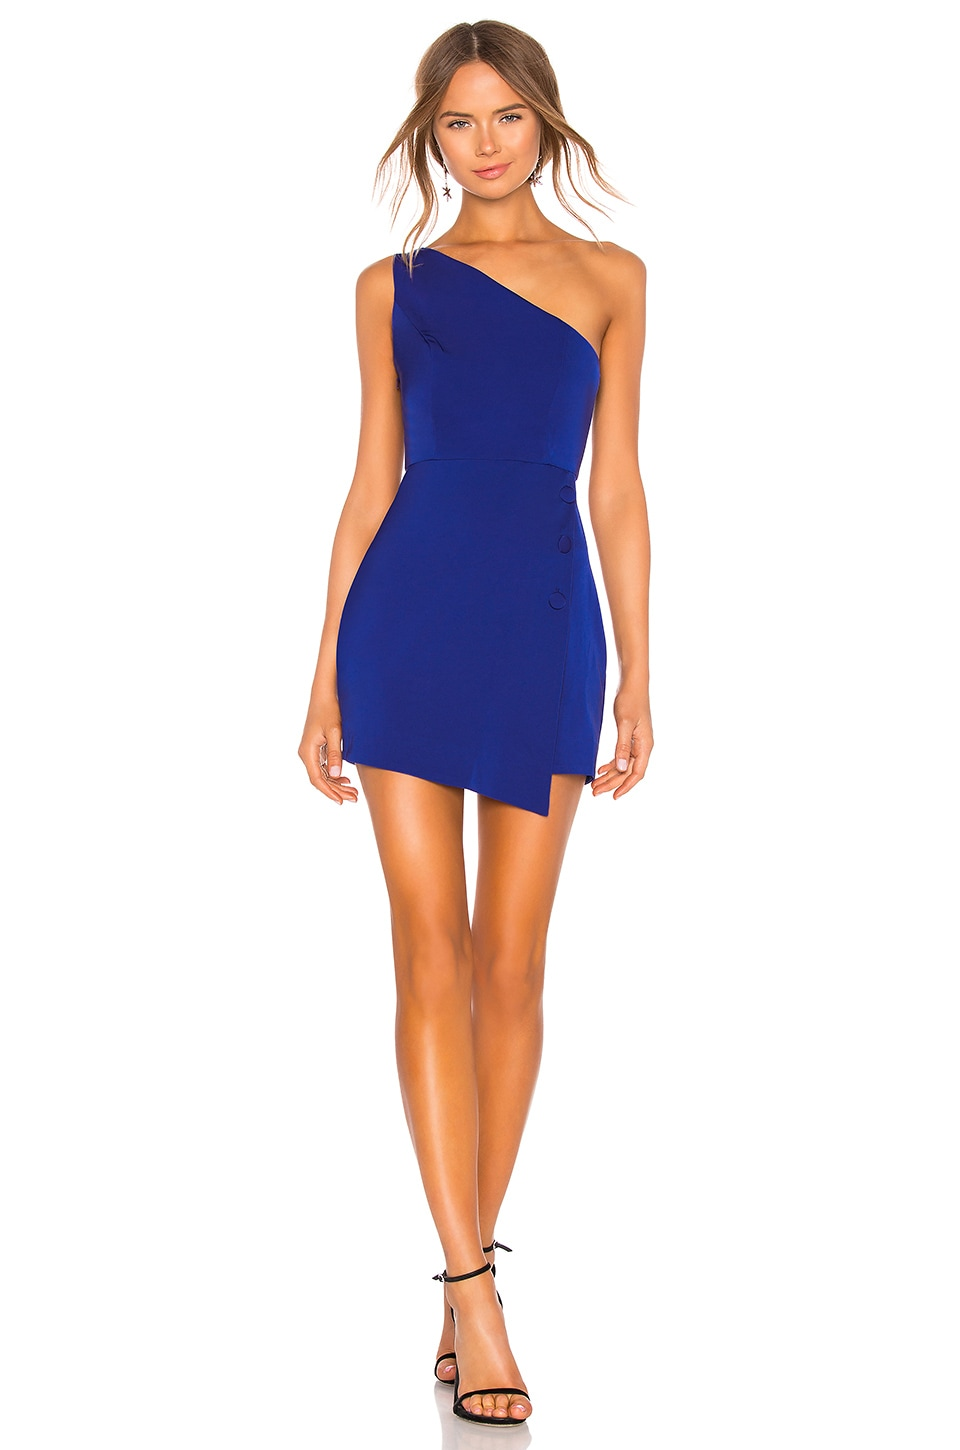 NBD Tere Mini Dress in Bright Cobalt